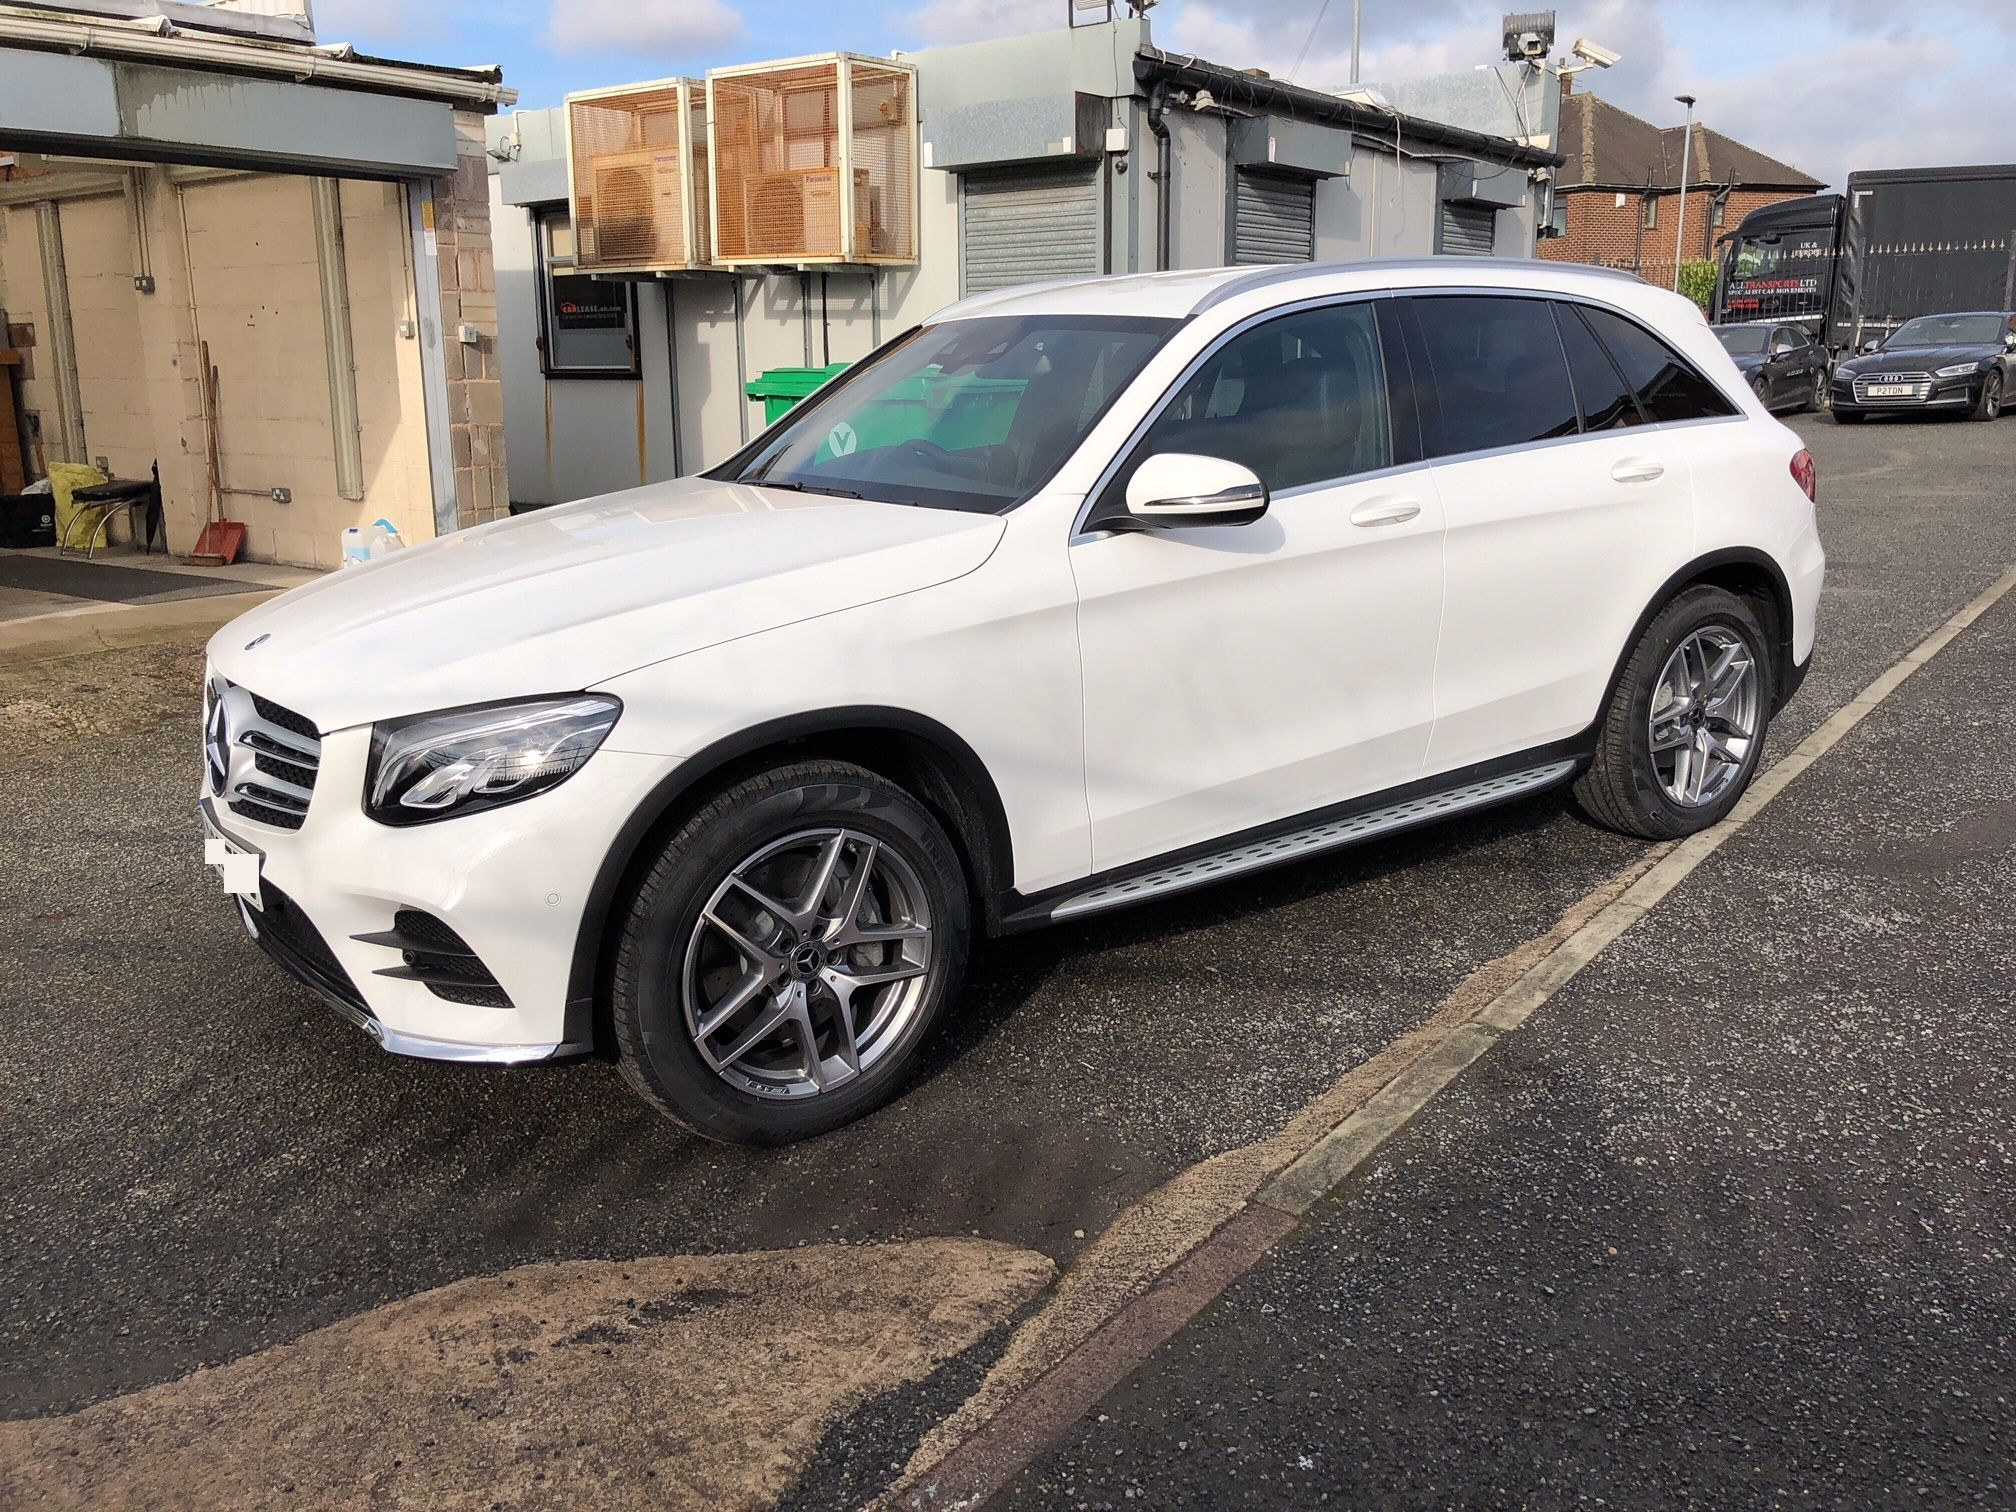 The Mercedes Benz Glc Diesel Estate Glc 220d 4matic Amg Line 5